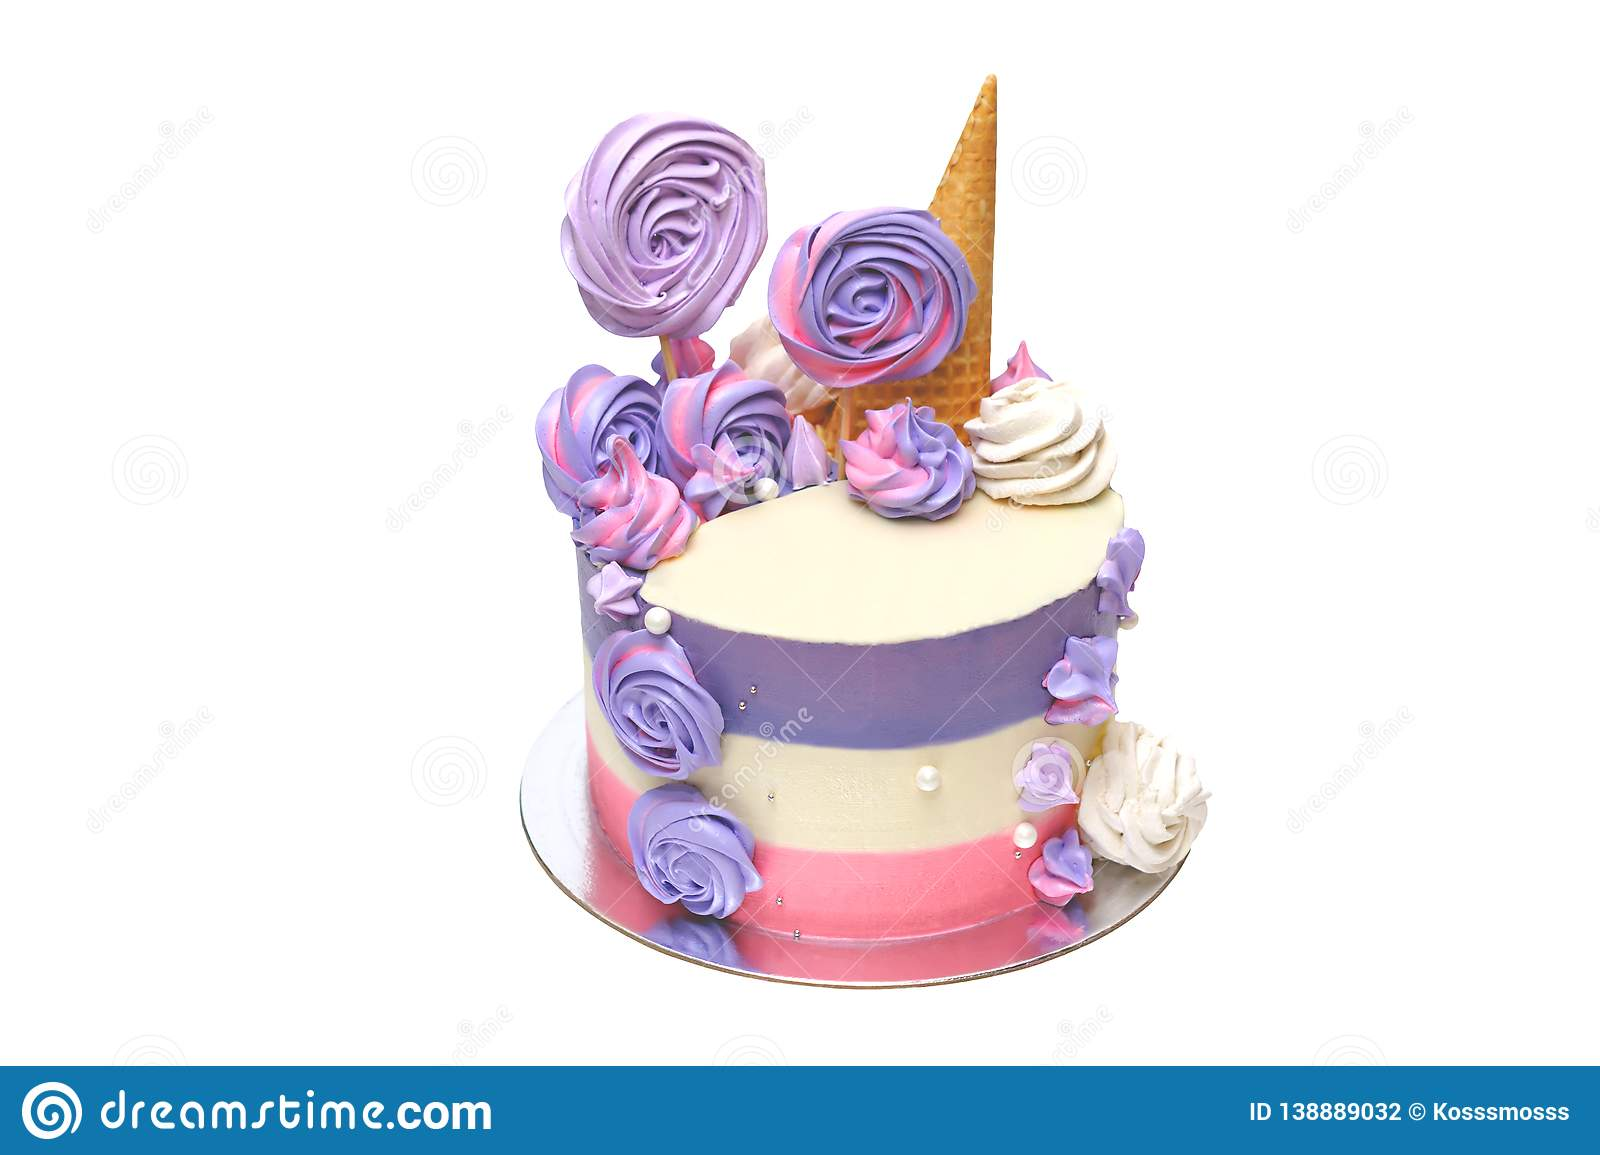 Awe Inspiring Birthday Cake With Colored Stripes Of Pink And Purple Decorated Personalised Birthday Cards Arneslily Jamesorg